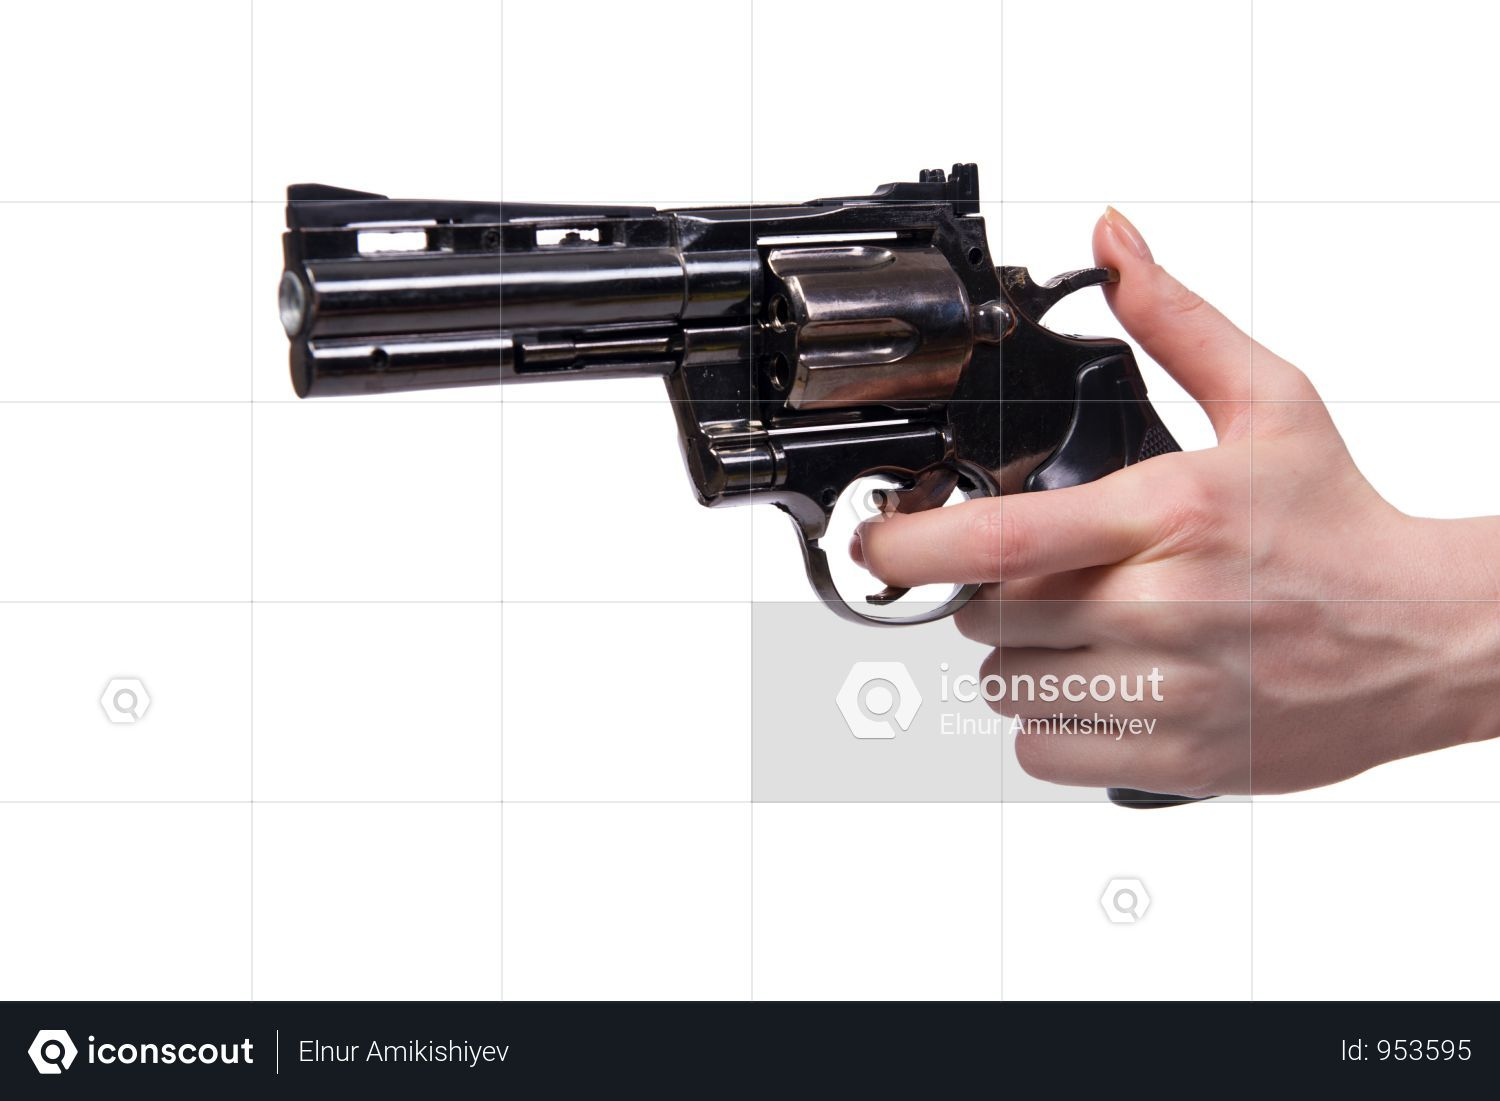 Premium Hand With Handgun Isolated On White Photo Download In Png Jpg Format Photo Hand Guns Photoshop